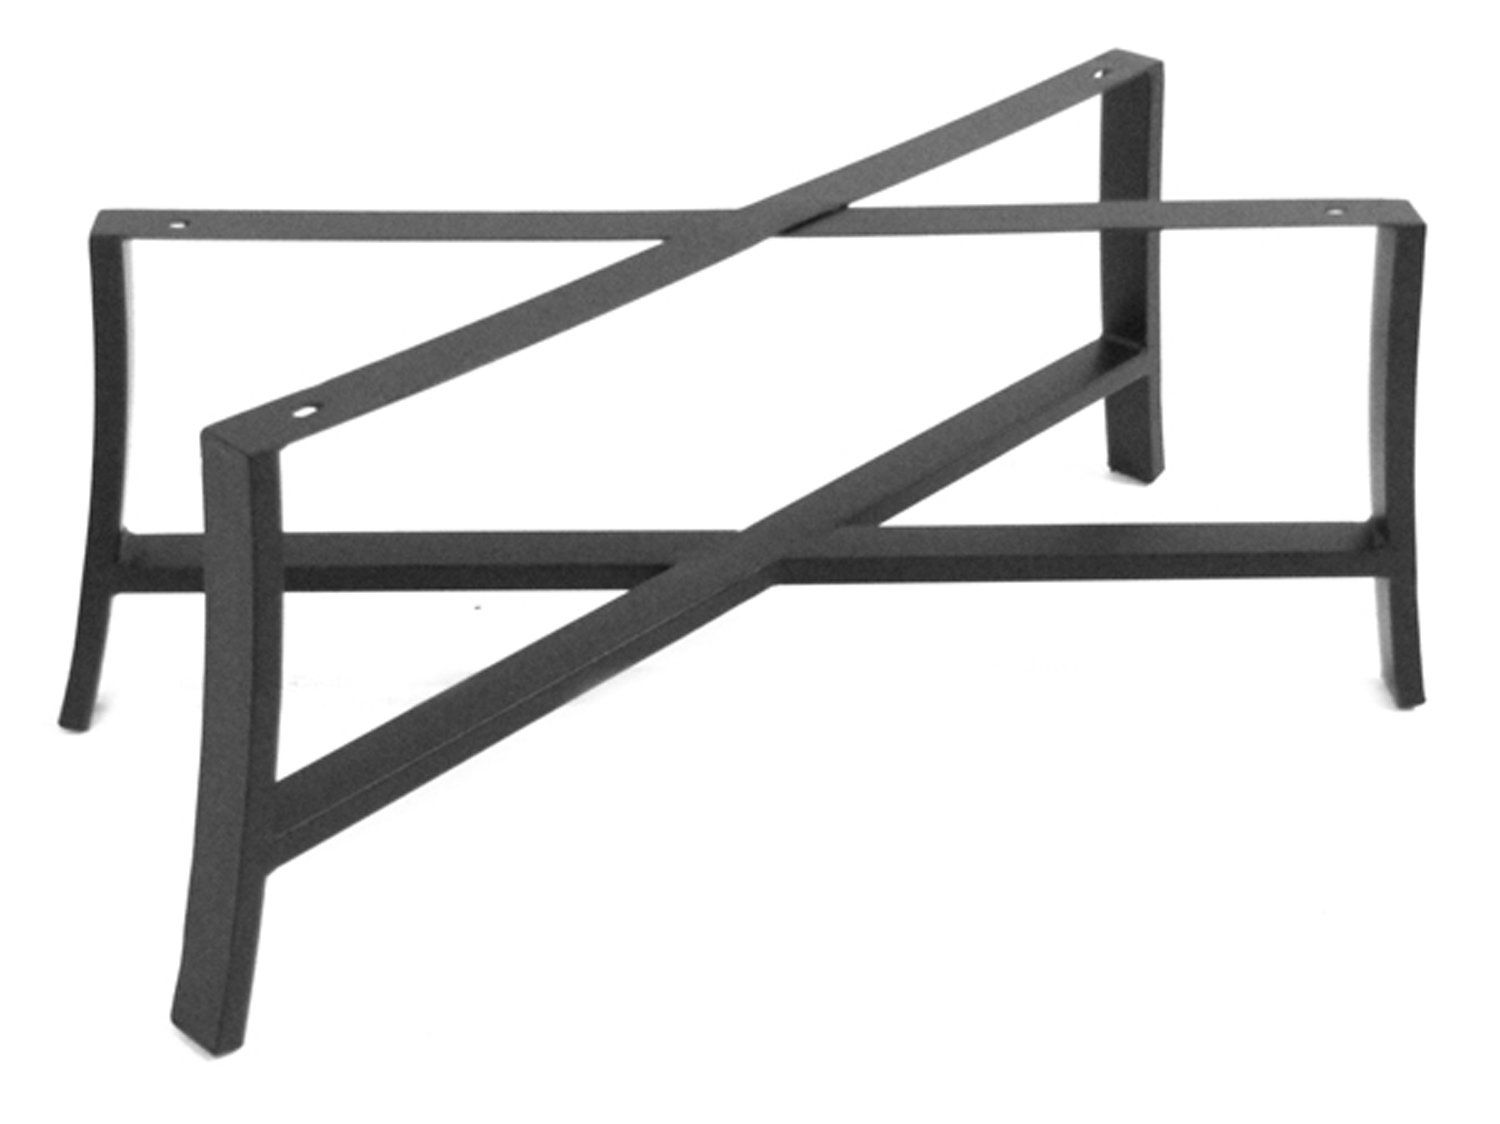 Meadowcraft Maddux Wrought Iron Coffee Table Base 4413370 01